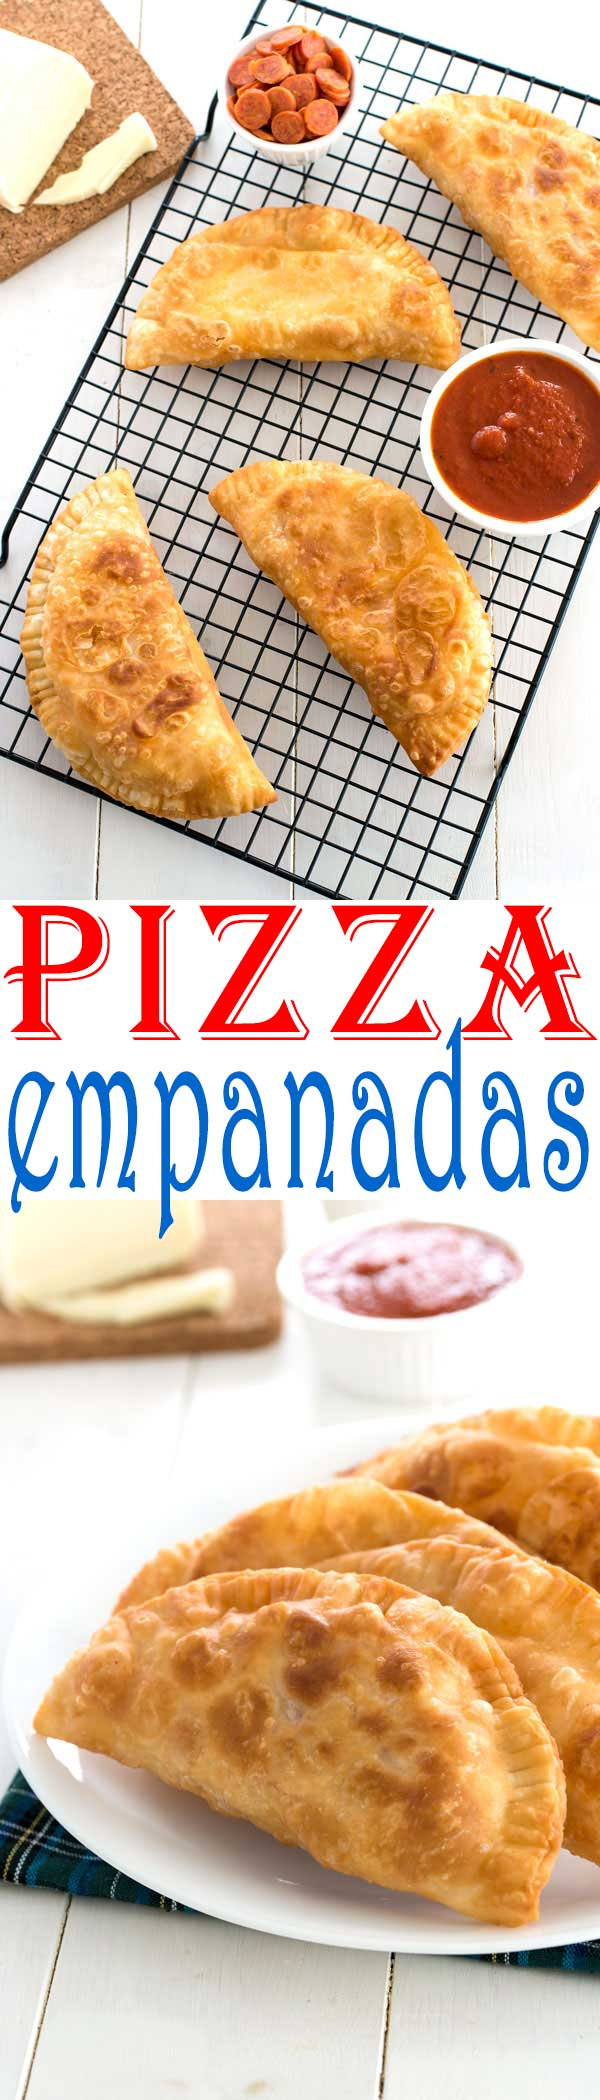 Easy Puerto Rican Pizza Empanadas (empanadillas de pizza) with pepperoni and cheese! #piday #recipes #recipe #recipeideas #easyrecipe #food #foodgawker #foodblog #recipeoftheday #appetizer #cheese #partyfood #dinner #pepperoni #pizza #empanadas #puertorican